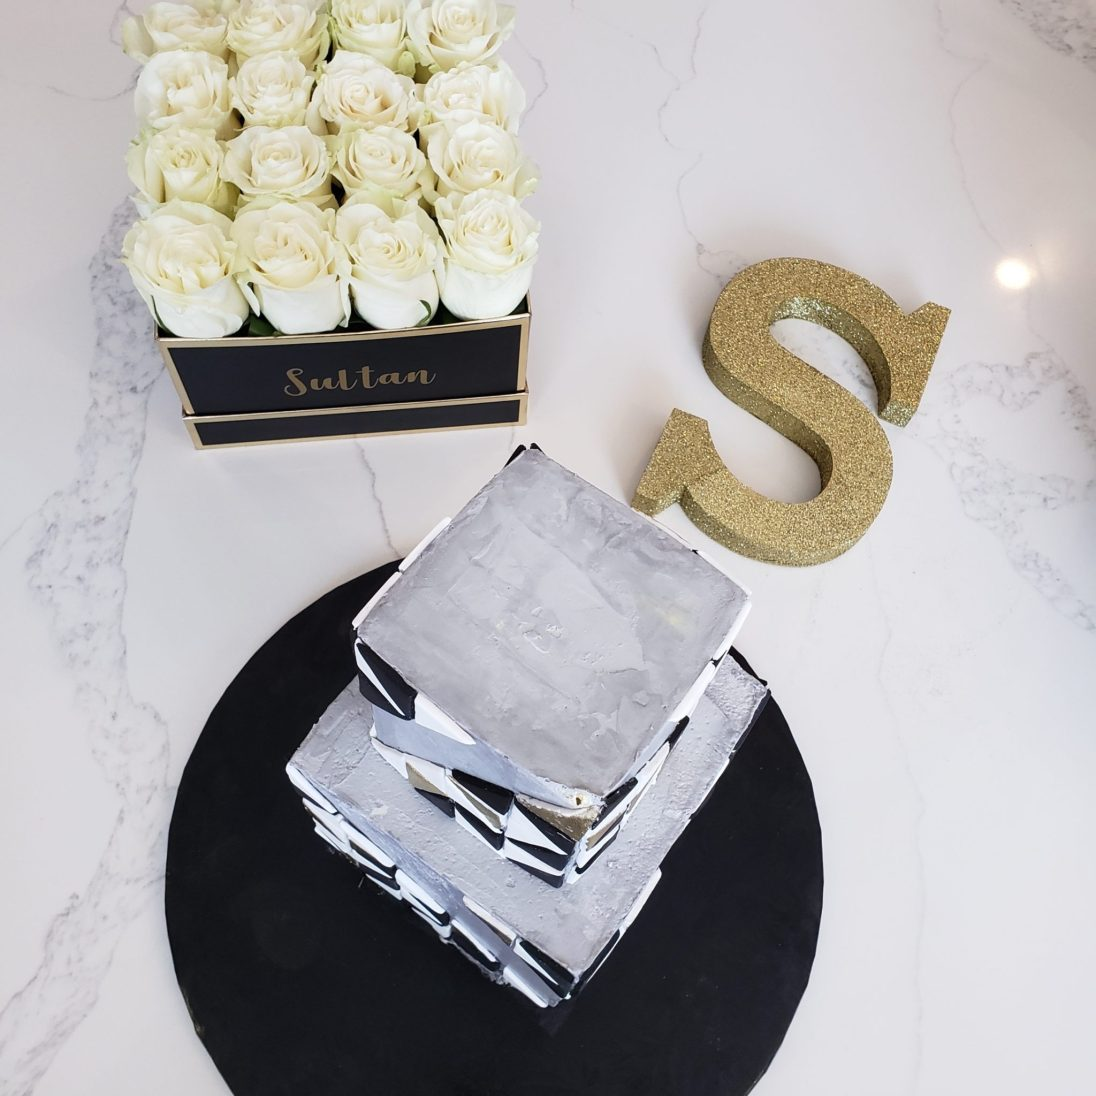 Just Sultan - Hotel X - Birthday Celebration - Cake and Flowers